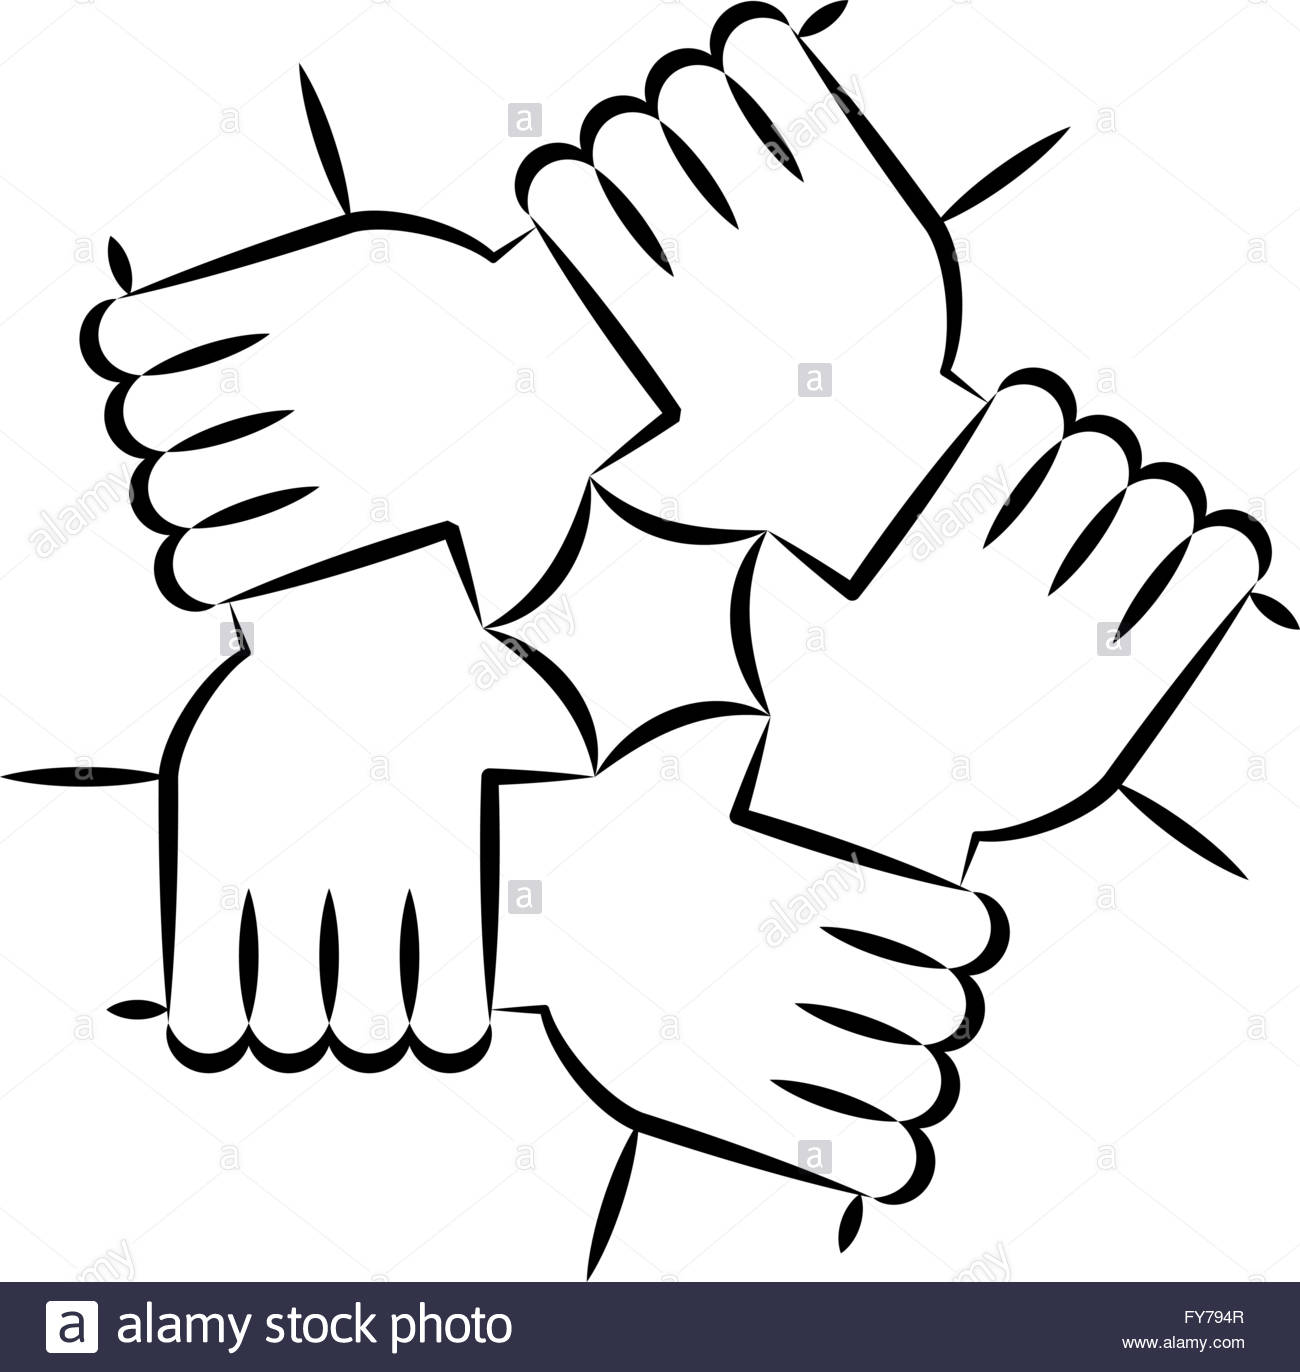 Vector Drawing Lines Unity : Solidarity circle line art on white five hands holding